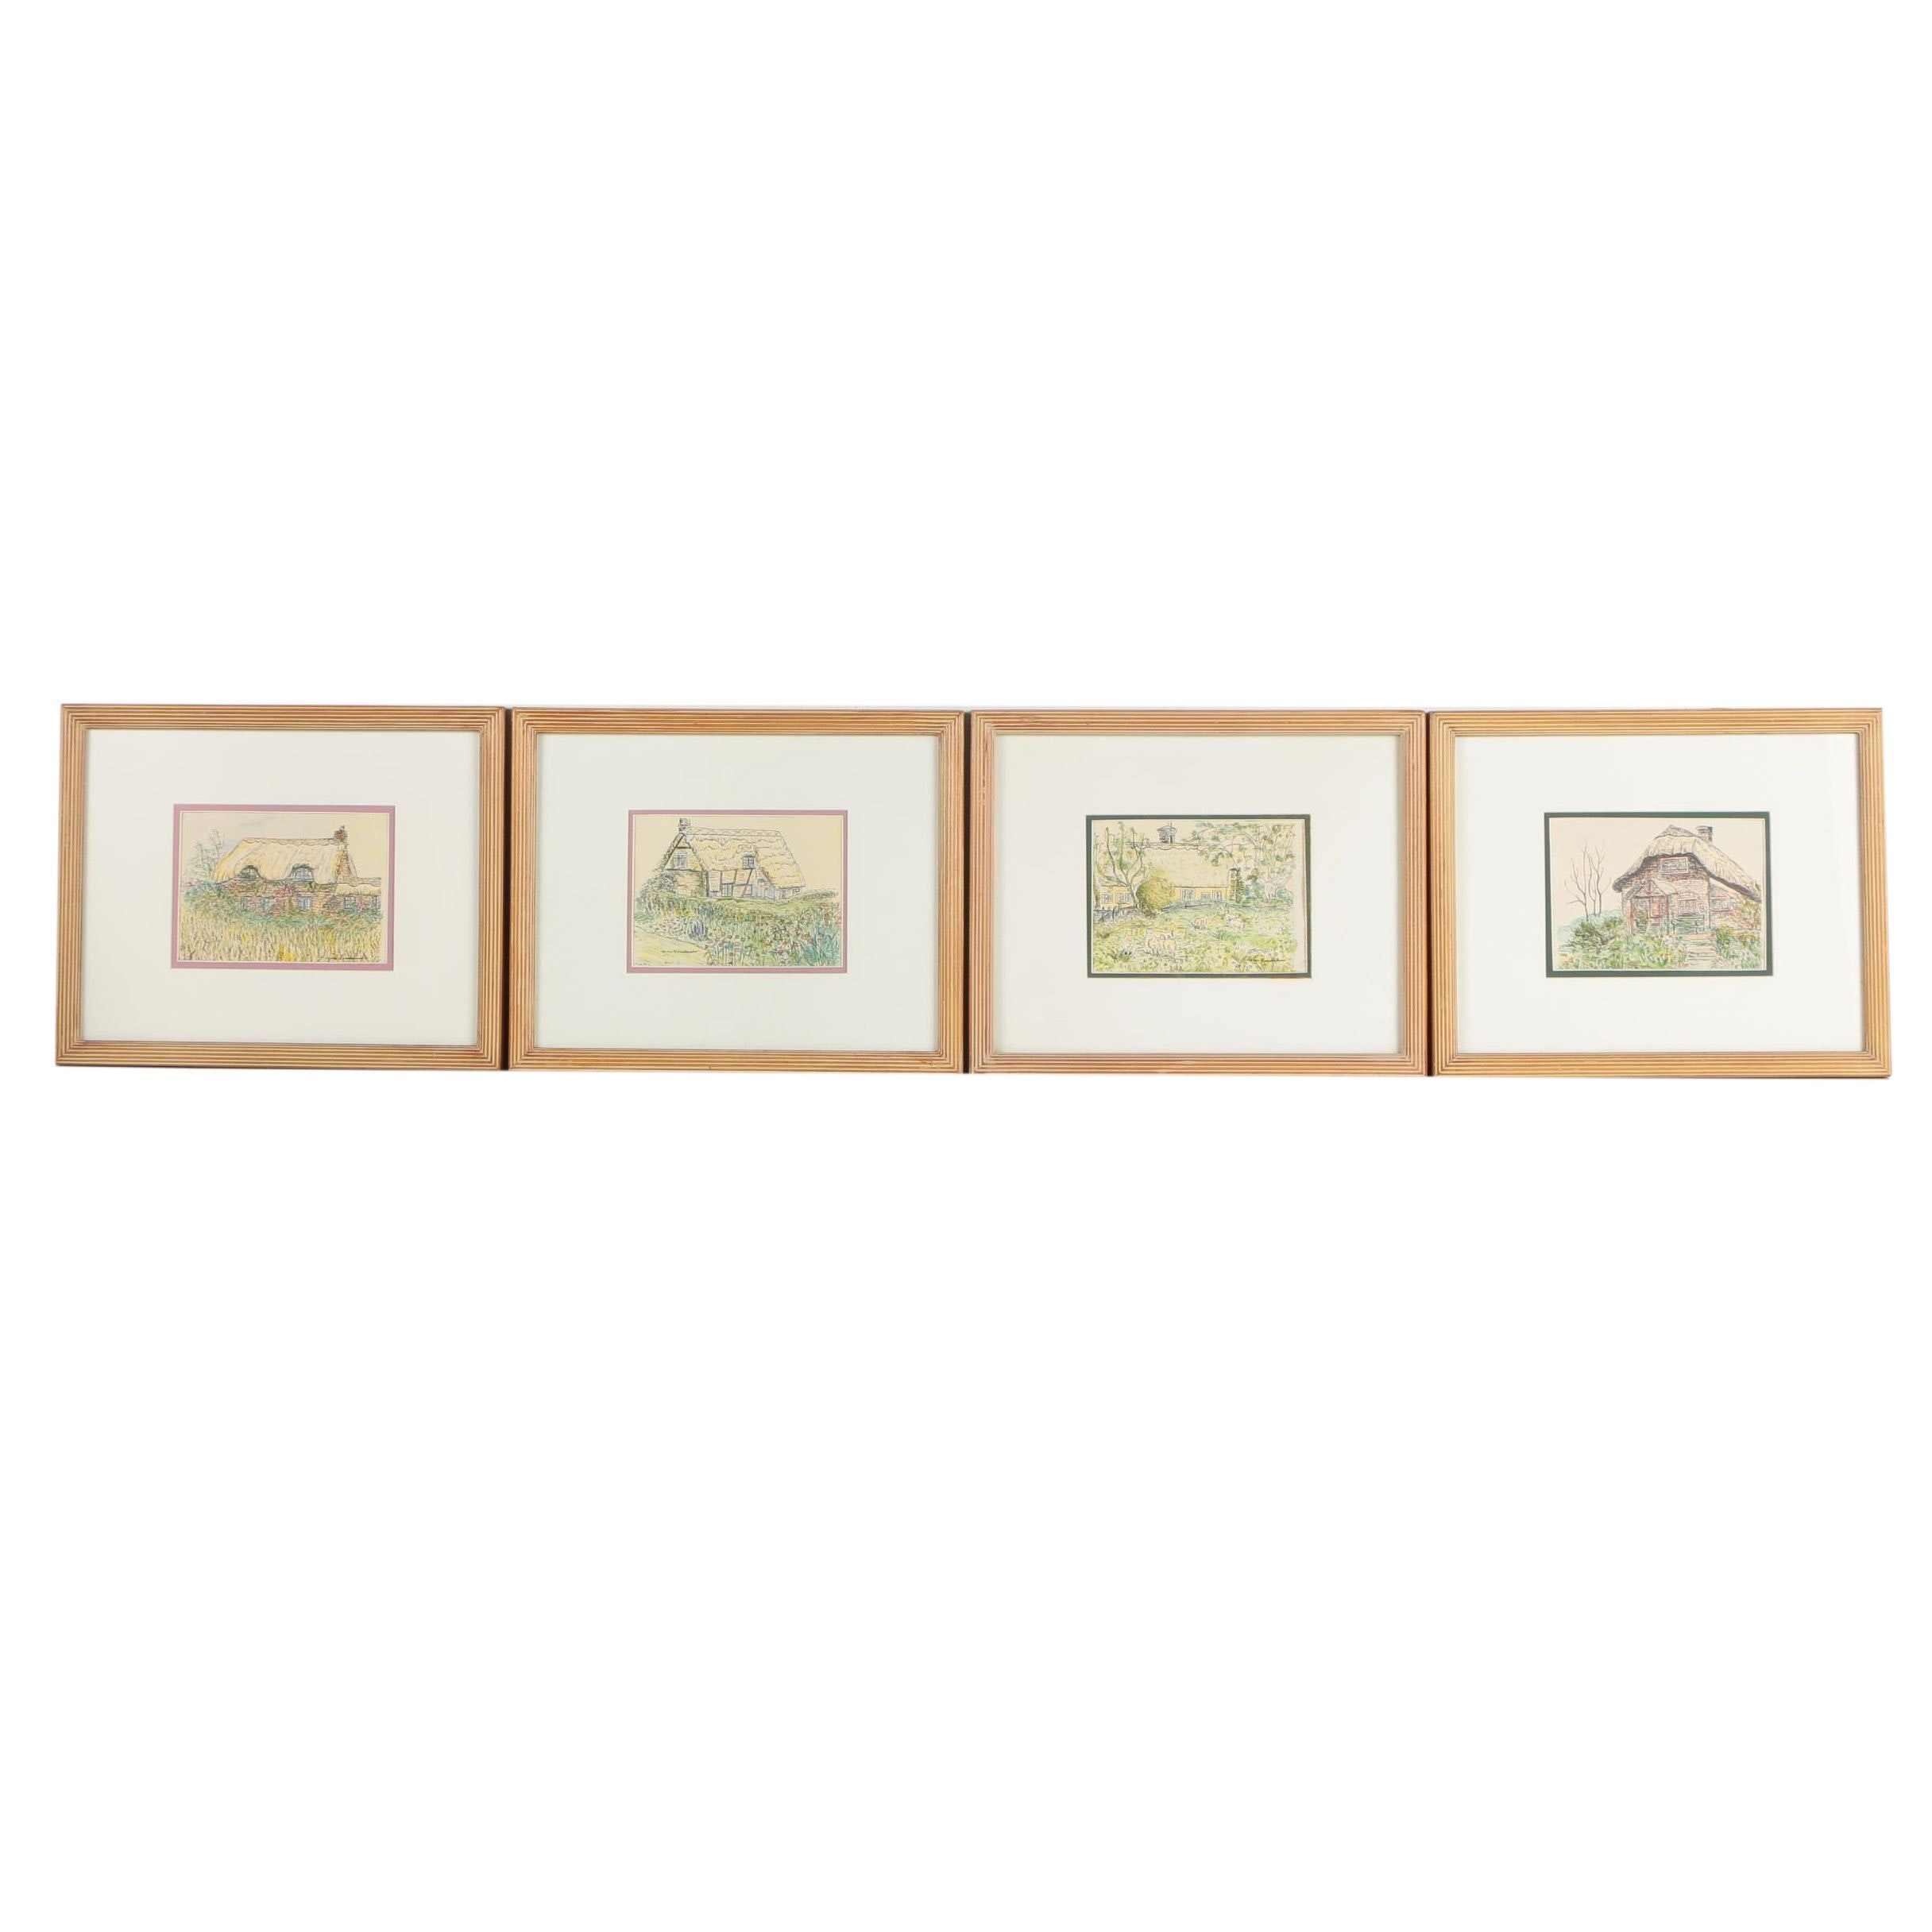 Hand Colored Lithographs of Cottages After Clare Lombardo